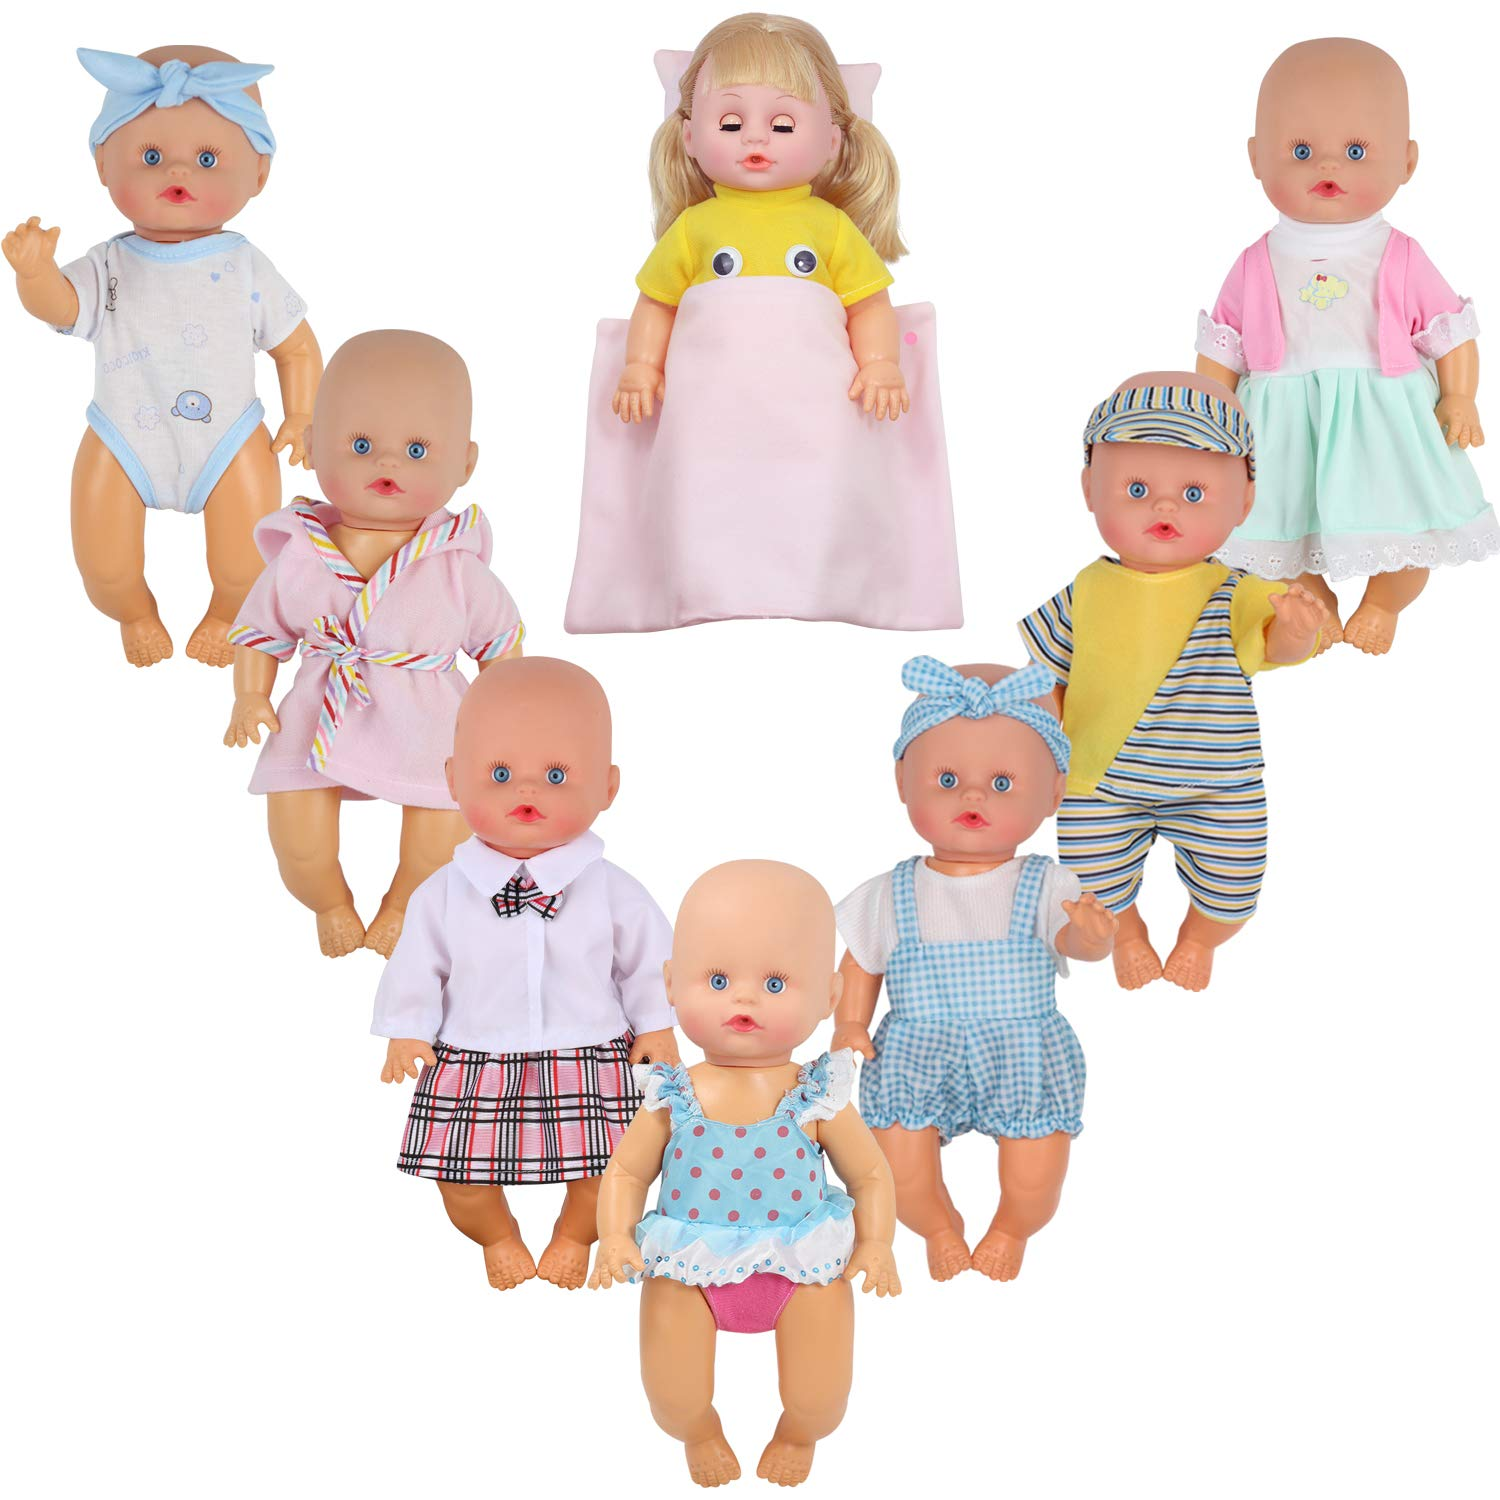 9 Sets for 8-9-10-11 Inch Baby Doll Clothes Reborn Newborn Outfits Costumes with Kitchen Accessory